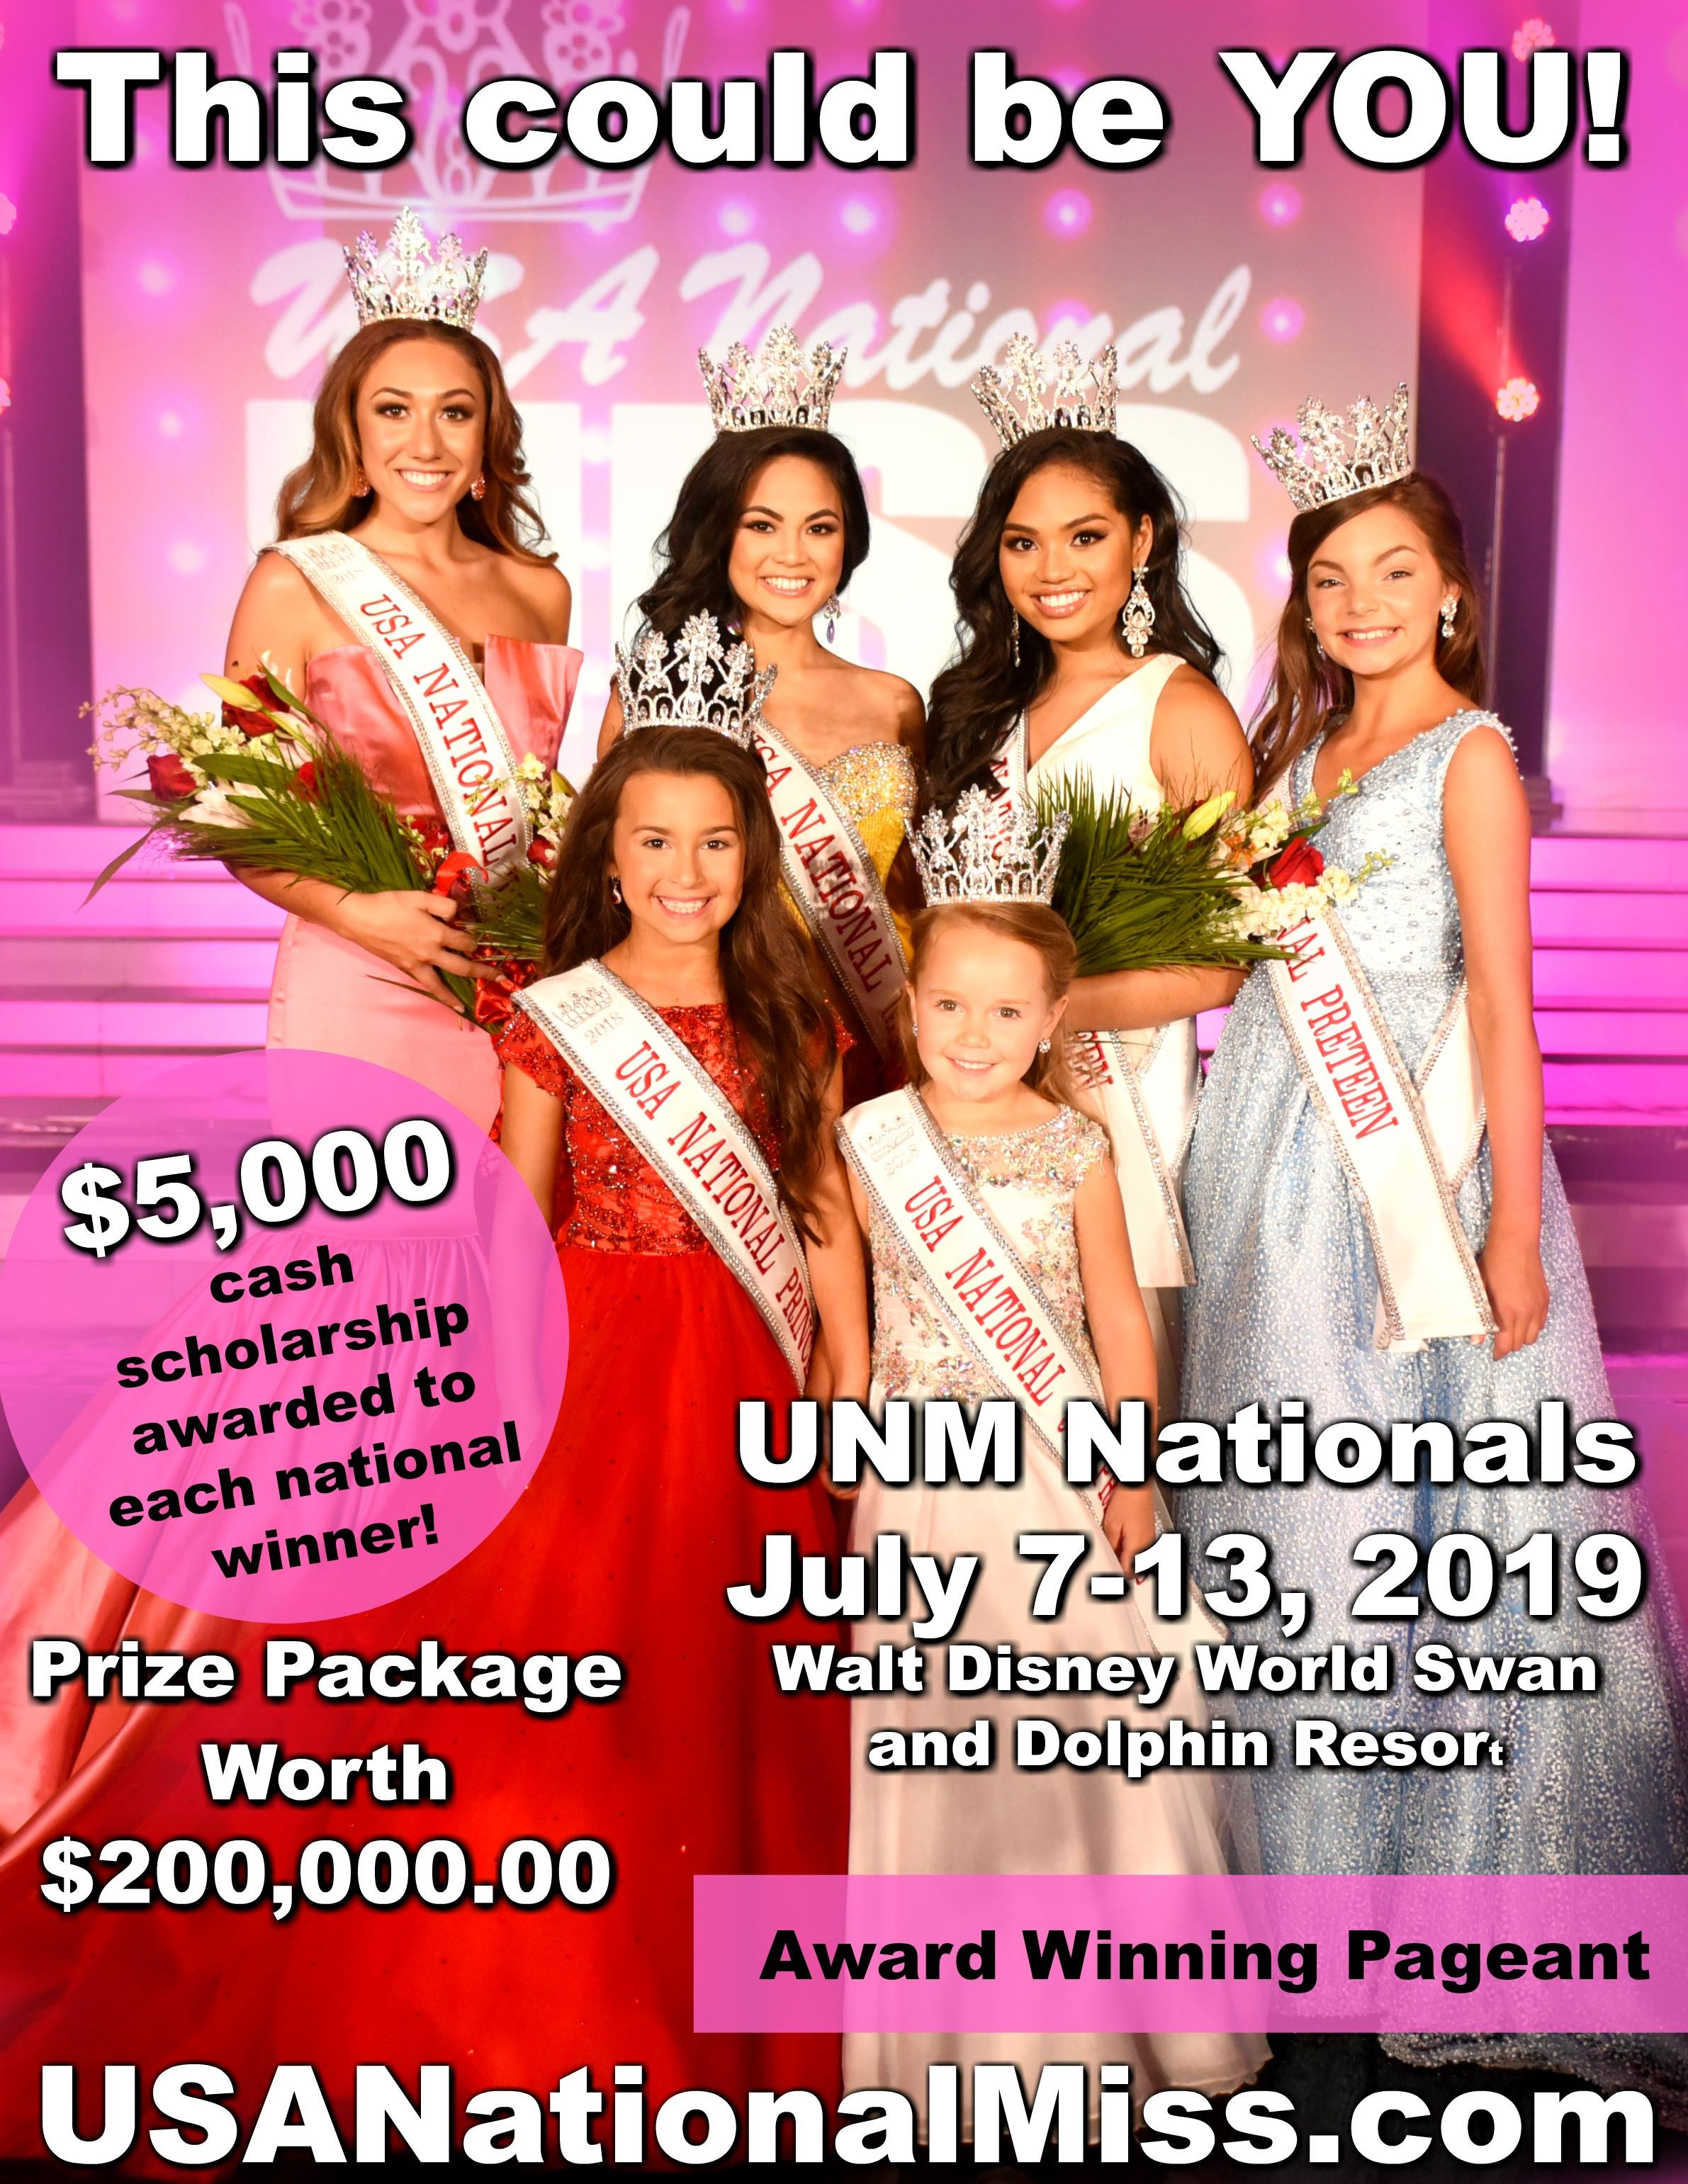 USA National Miss